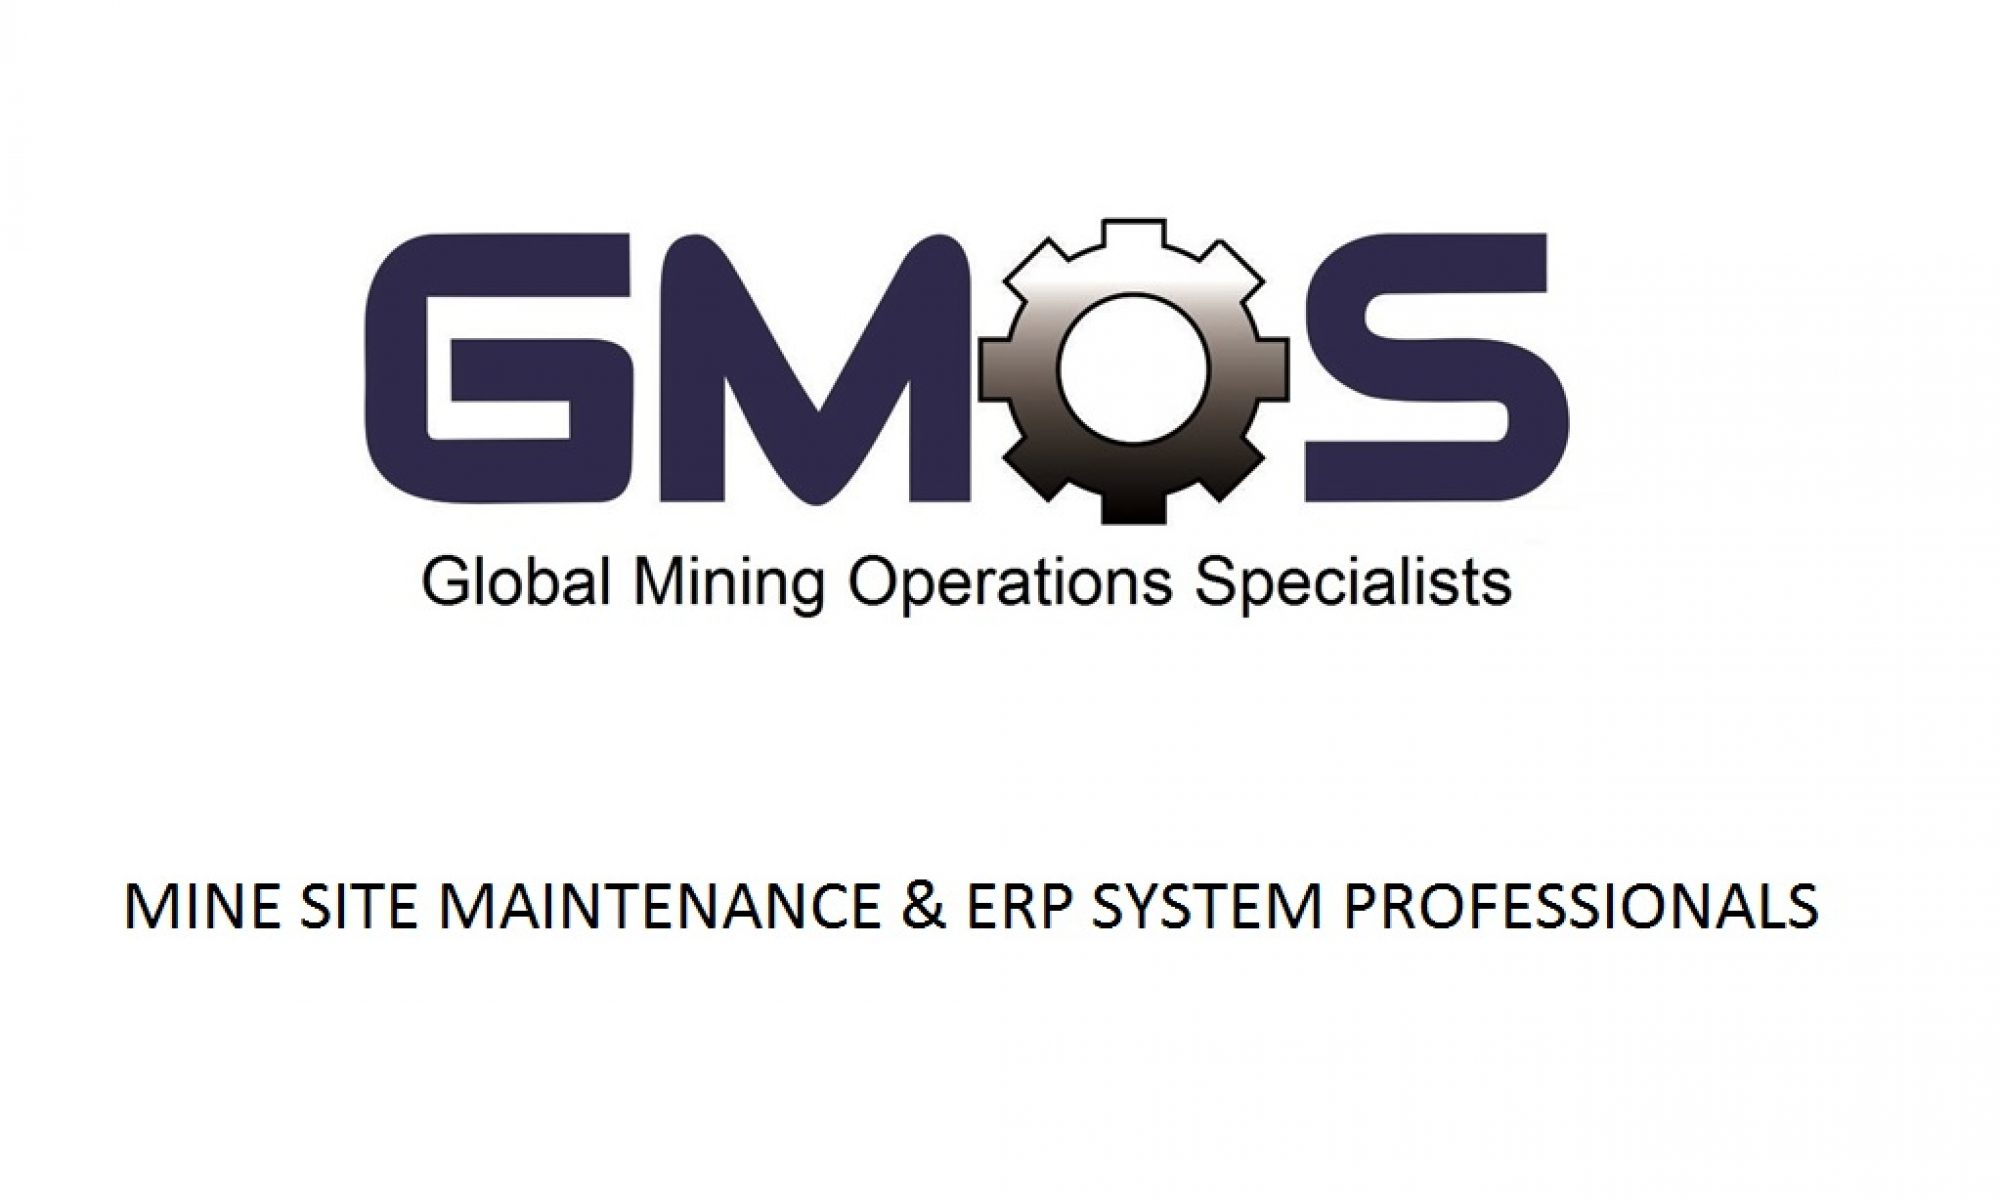 GMOS Global Mining Operations Specialists